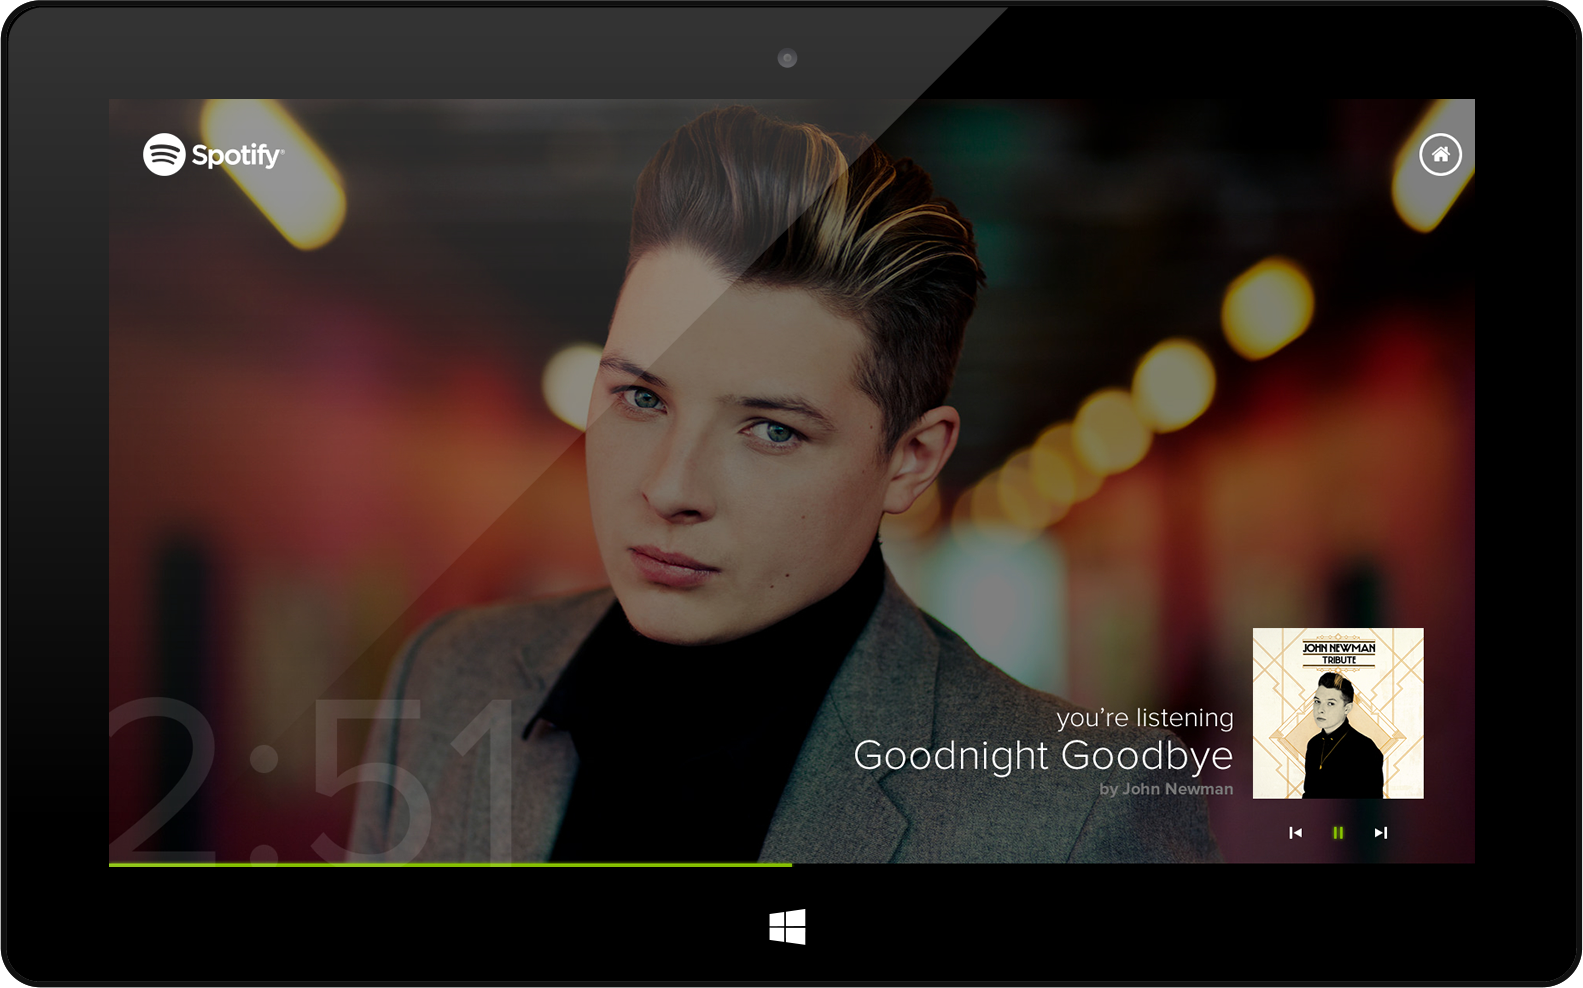 Spotify UI ideas for Windows 8 and Windows Phone - The